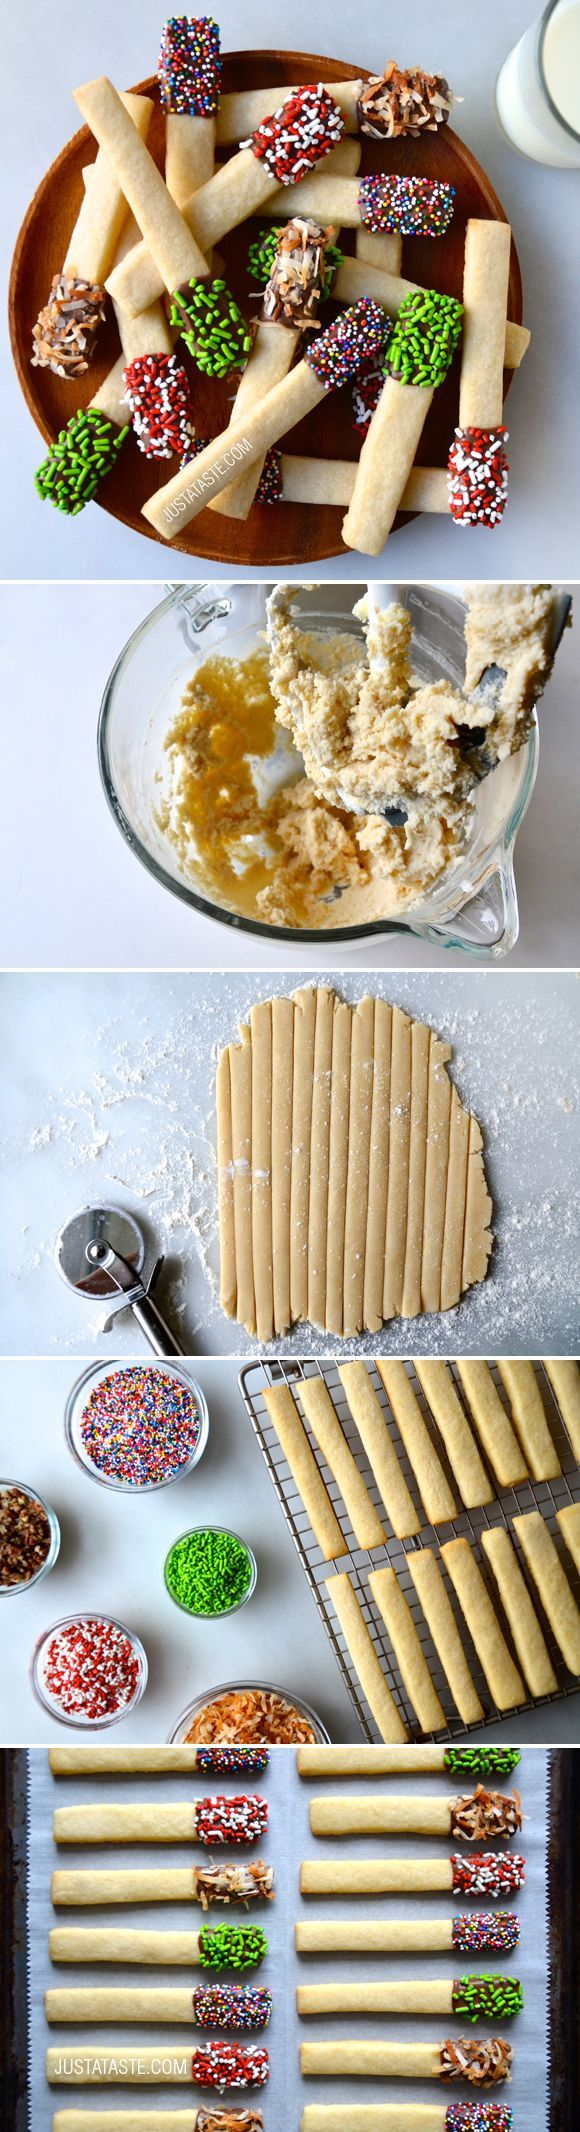 Sprinkle Sugar Cookie Sticks #recipe from justataste.com